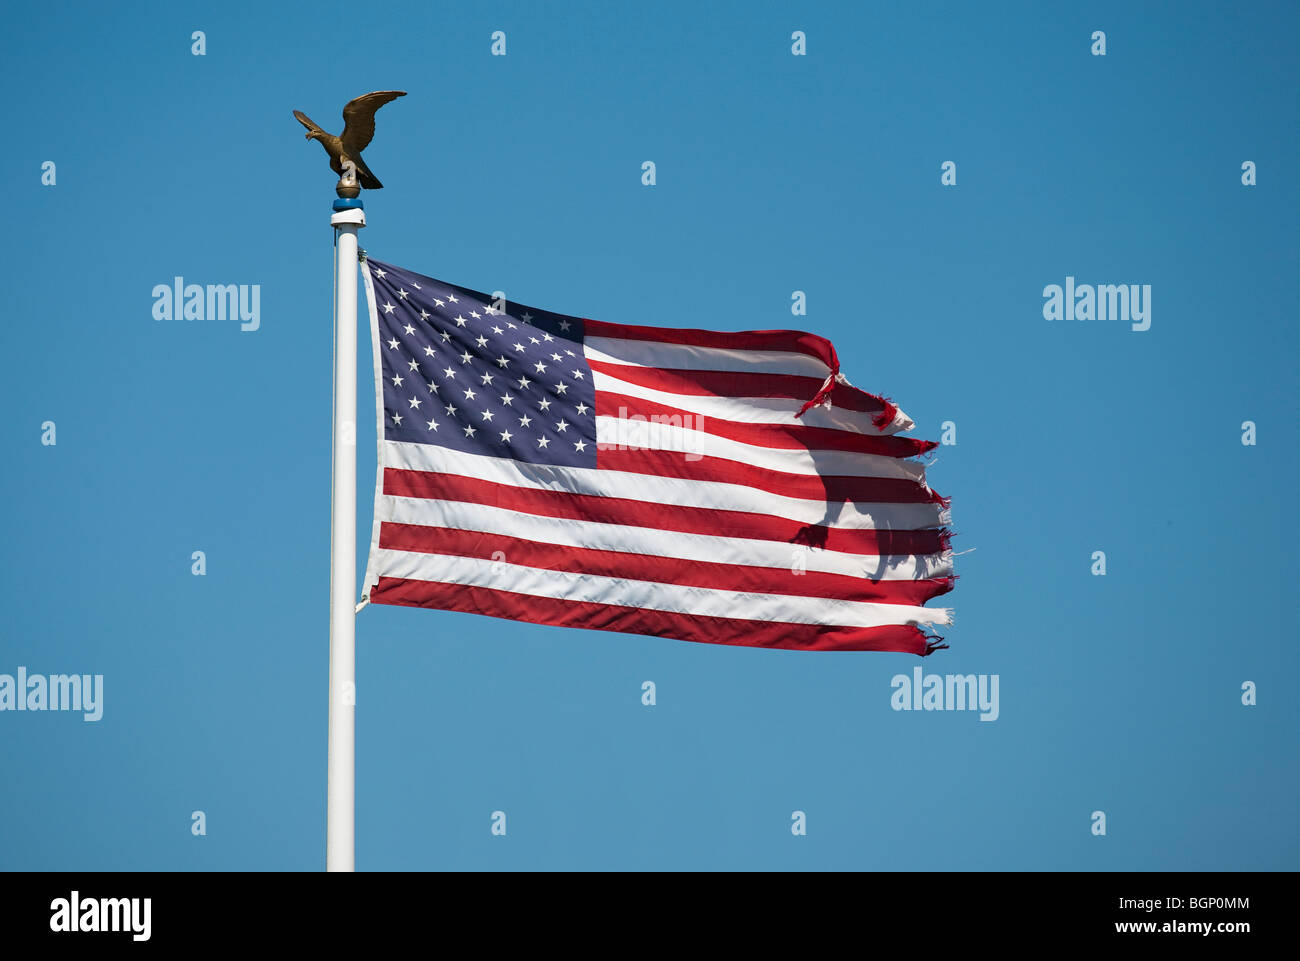 Waving flag of the usa with golden eagle - Stock Image